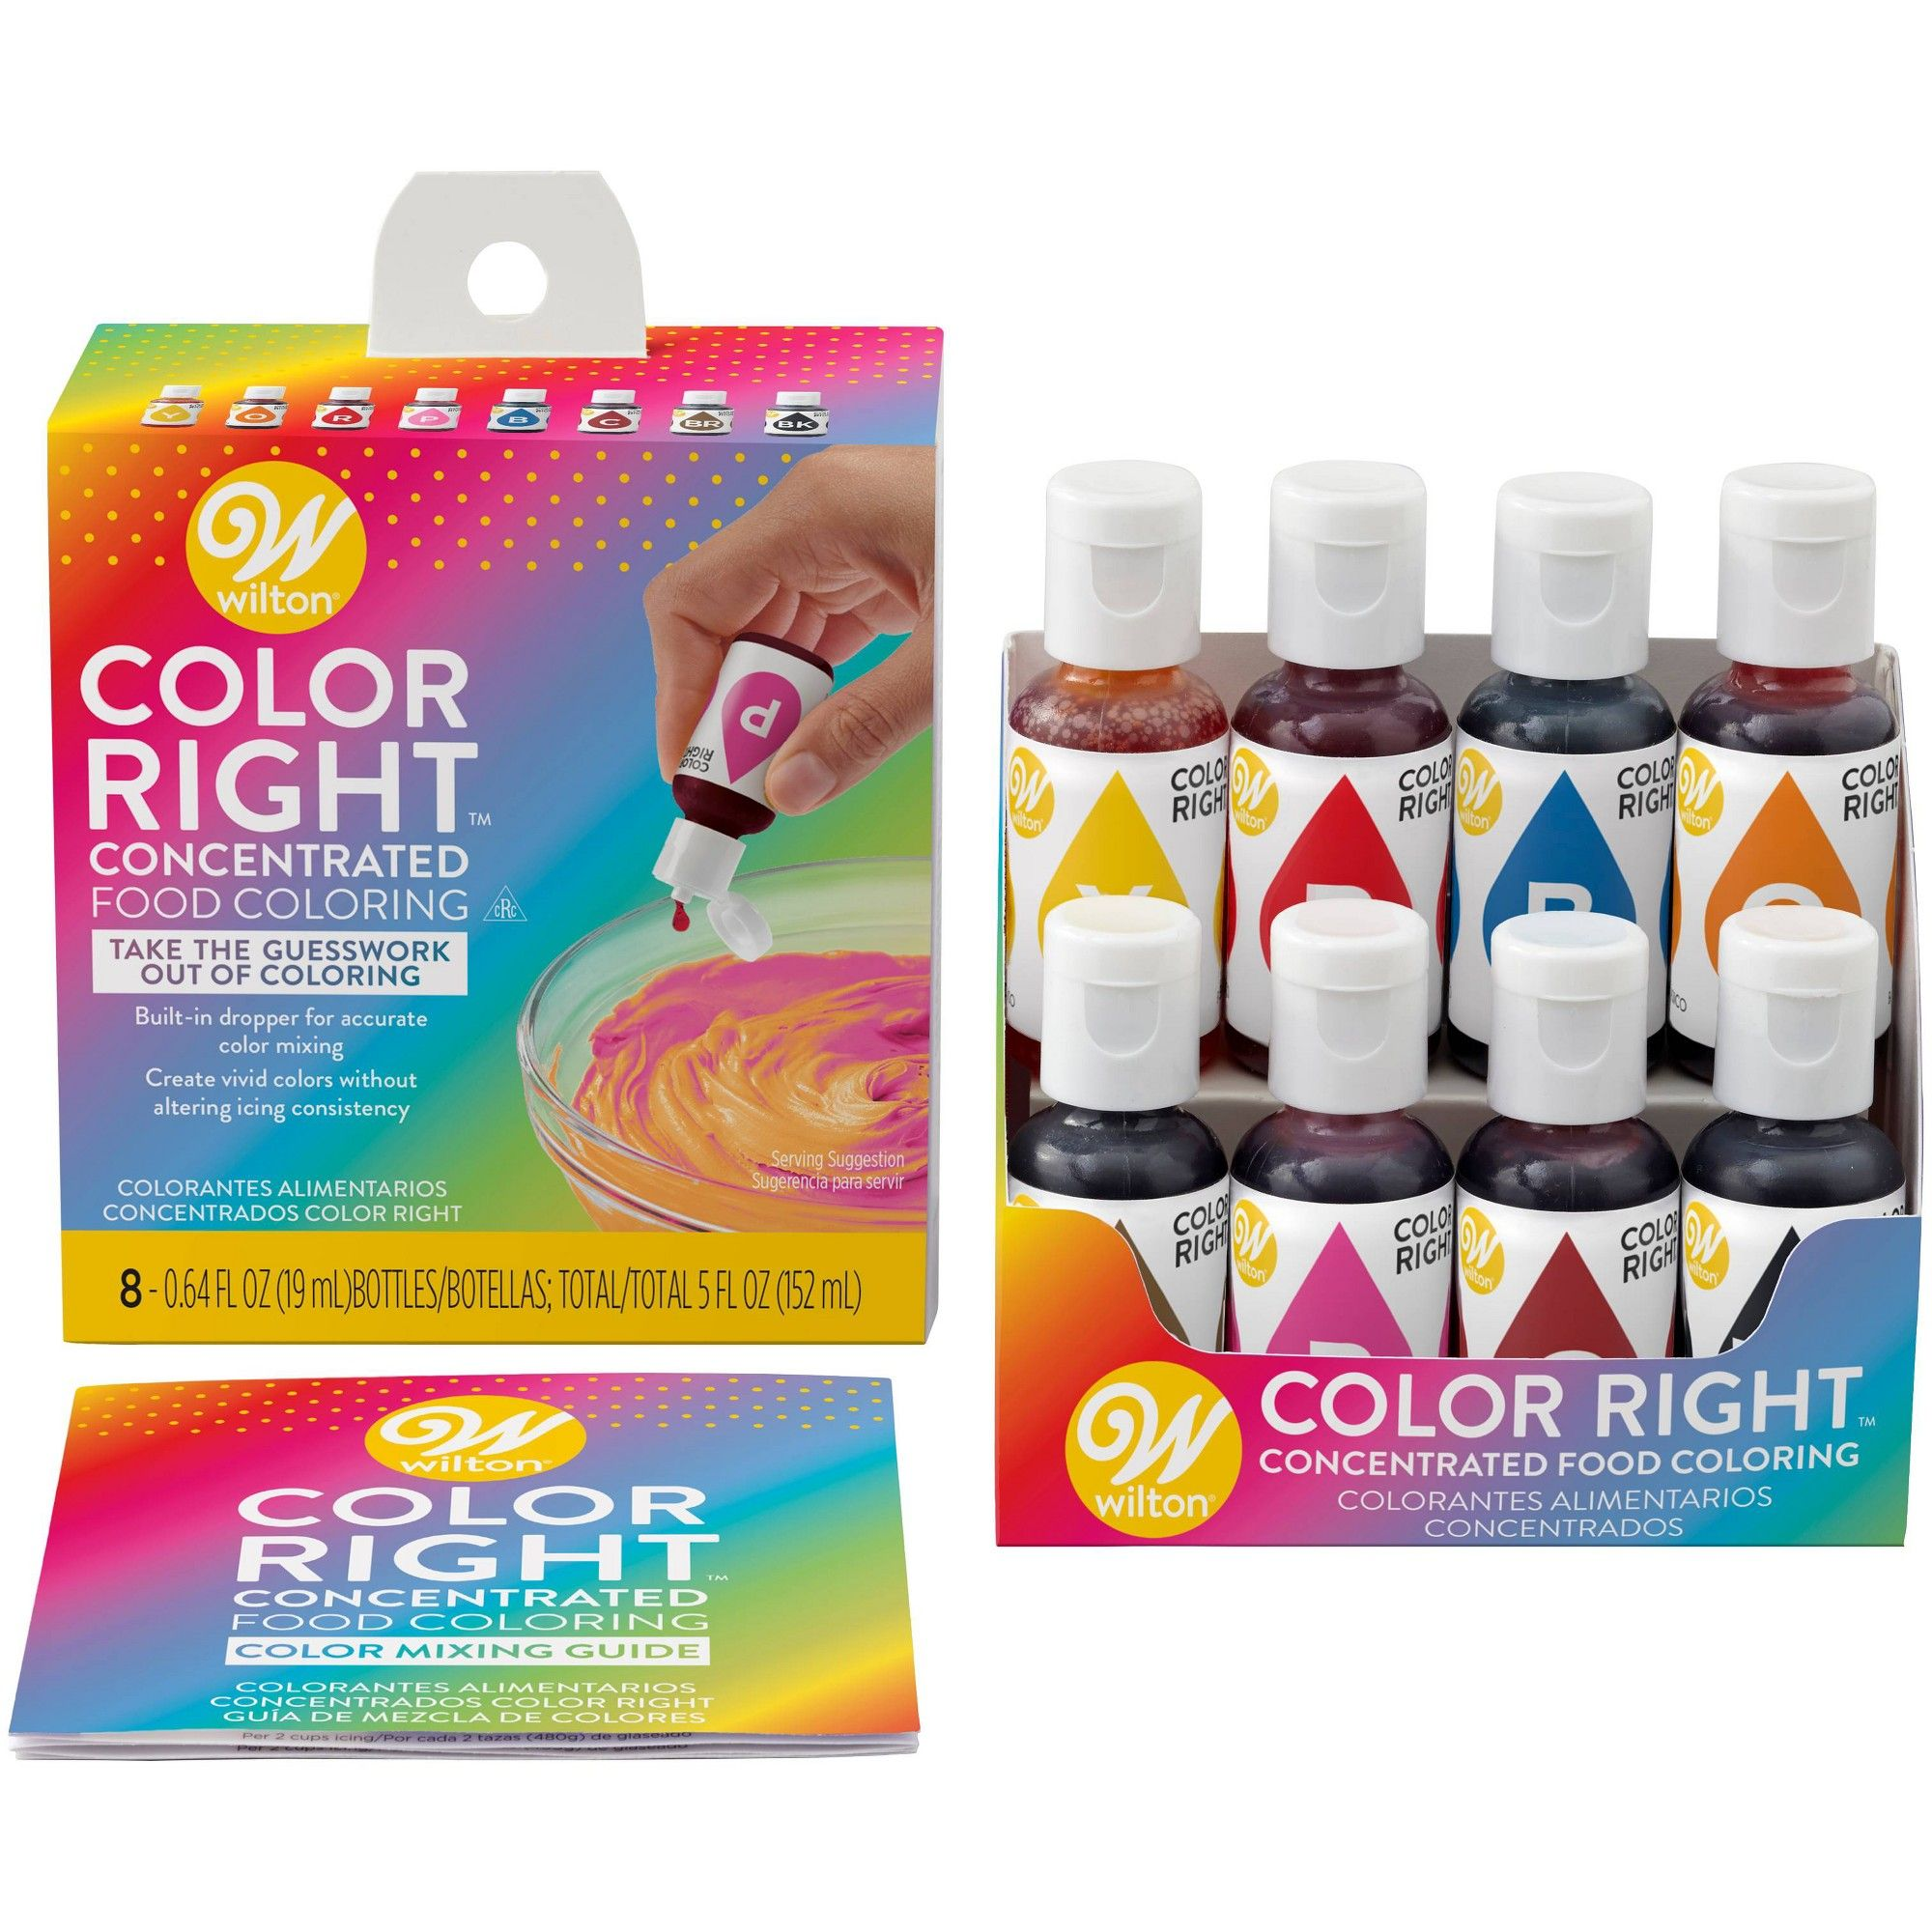 Wilton 5oz Color Right Concentrated Food Coloring Set, Multi